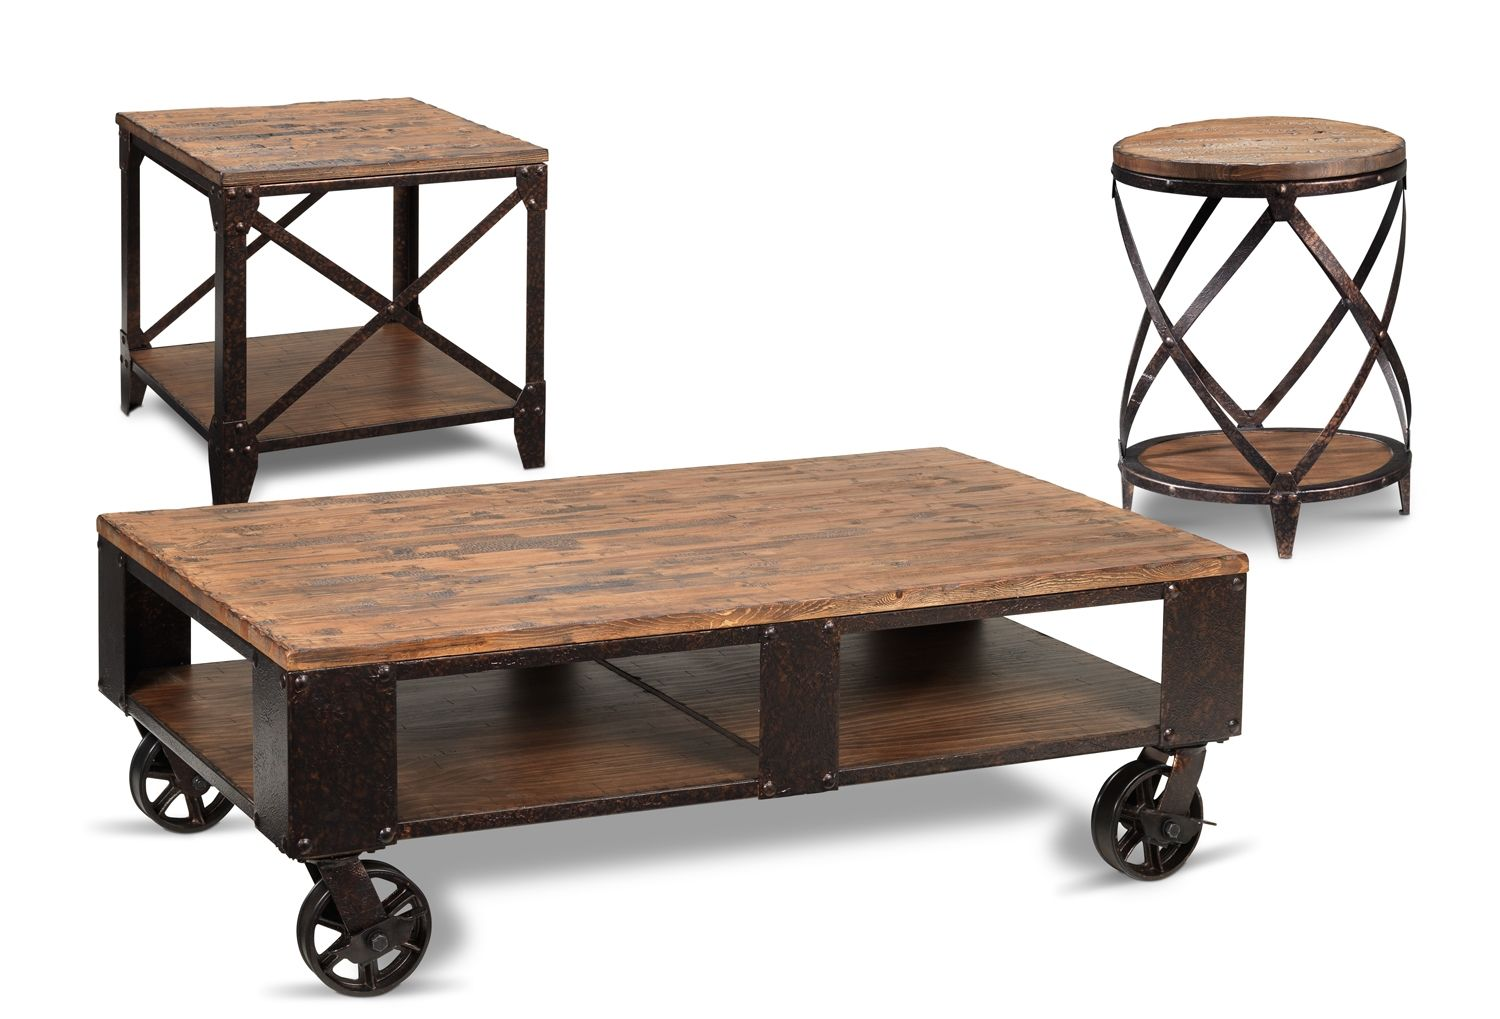 Pinebrook Occasional Tables Collection Leon S Coffee Table Furniture Rustic Industrial Furniture [ 1019 x 1500 Pixel ]